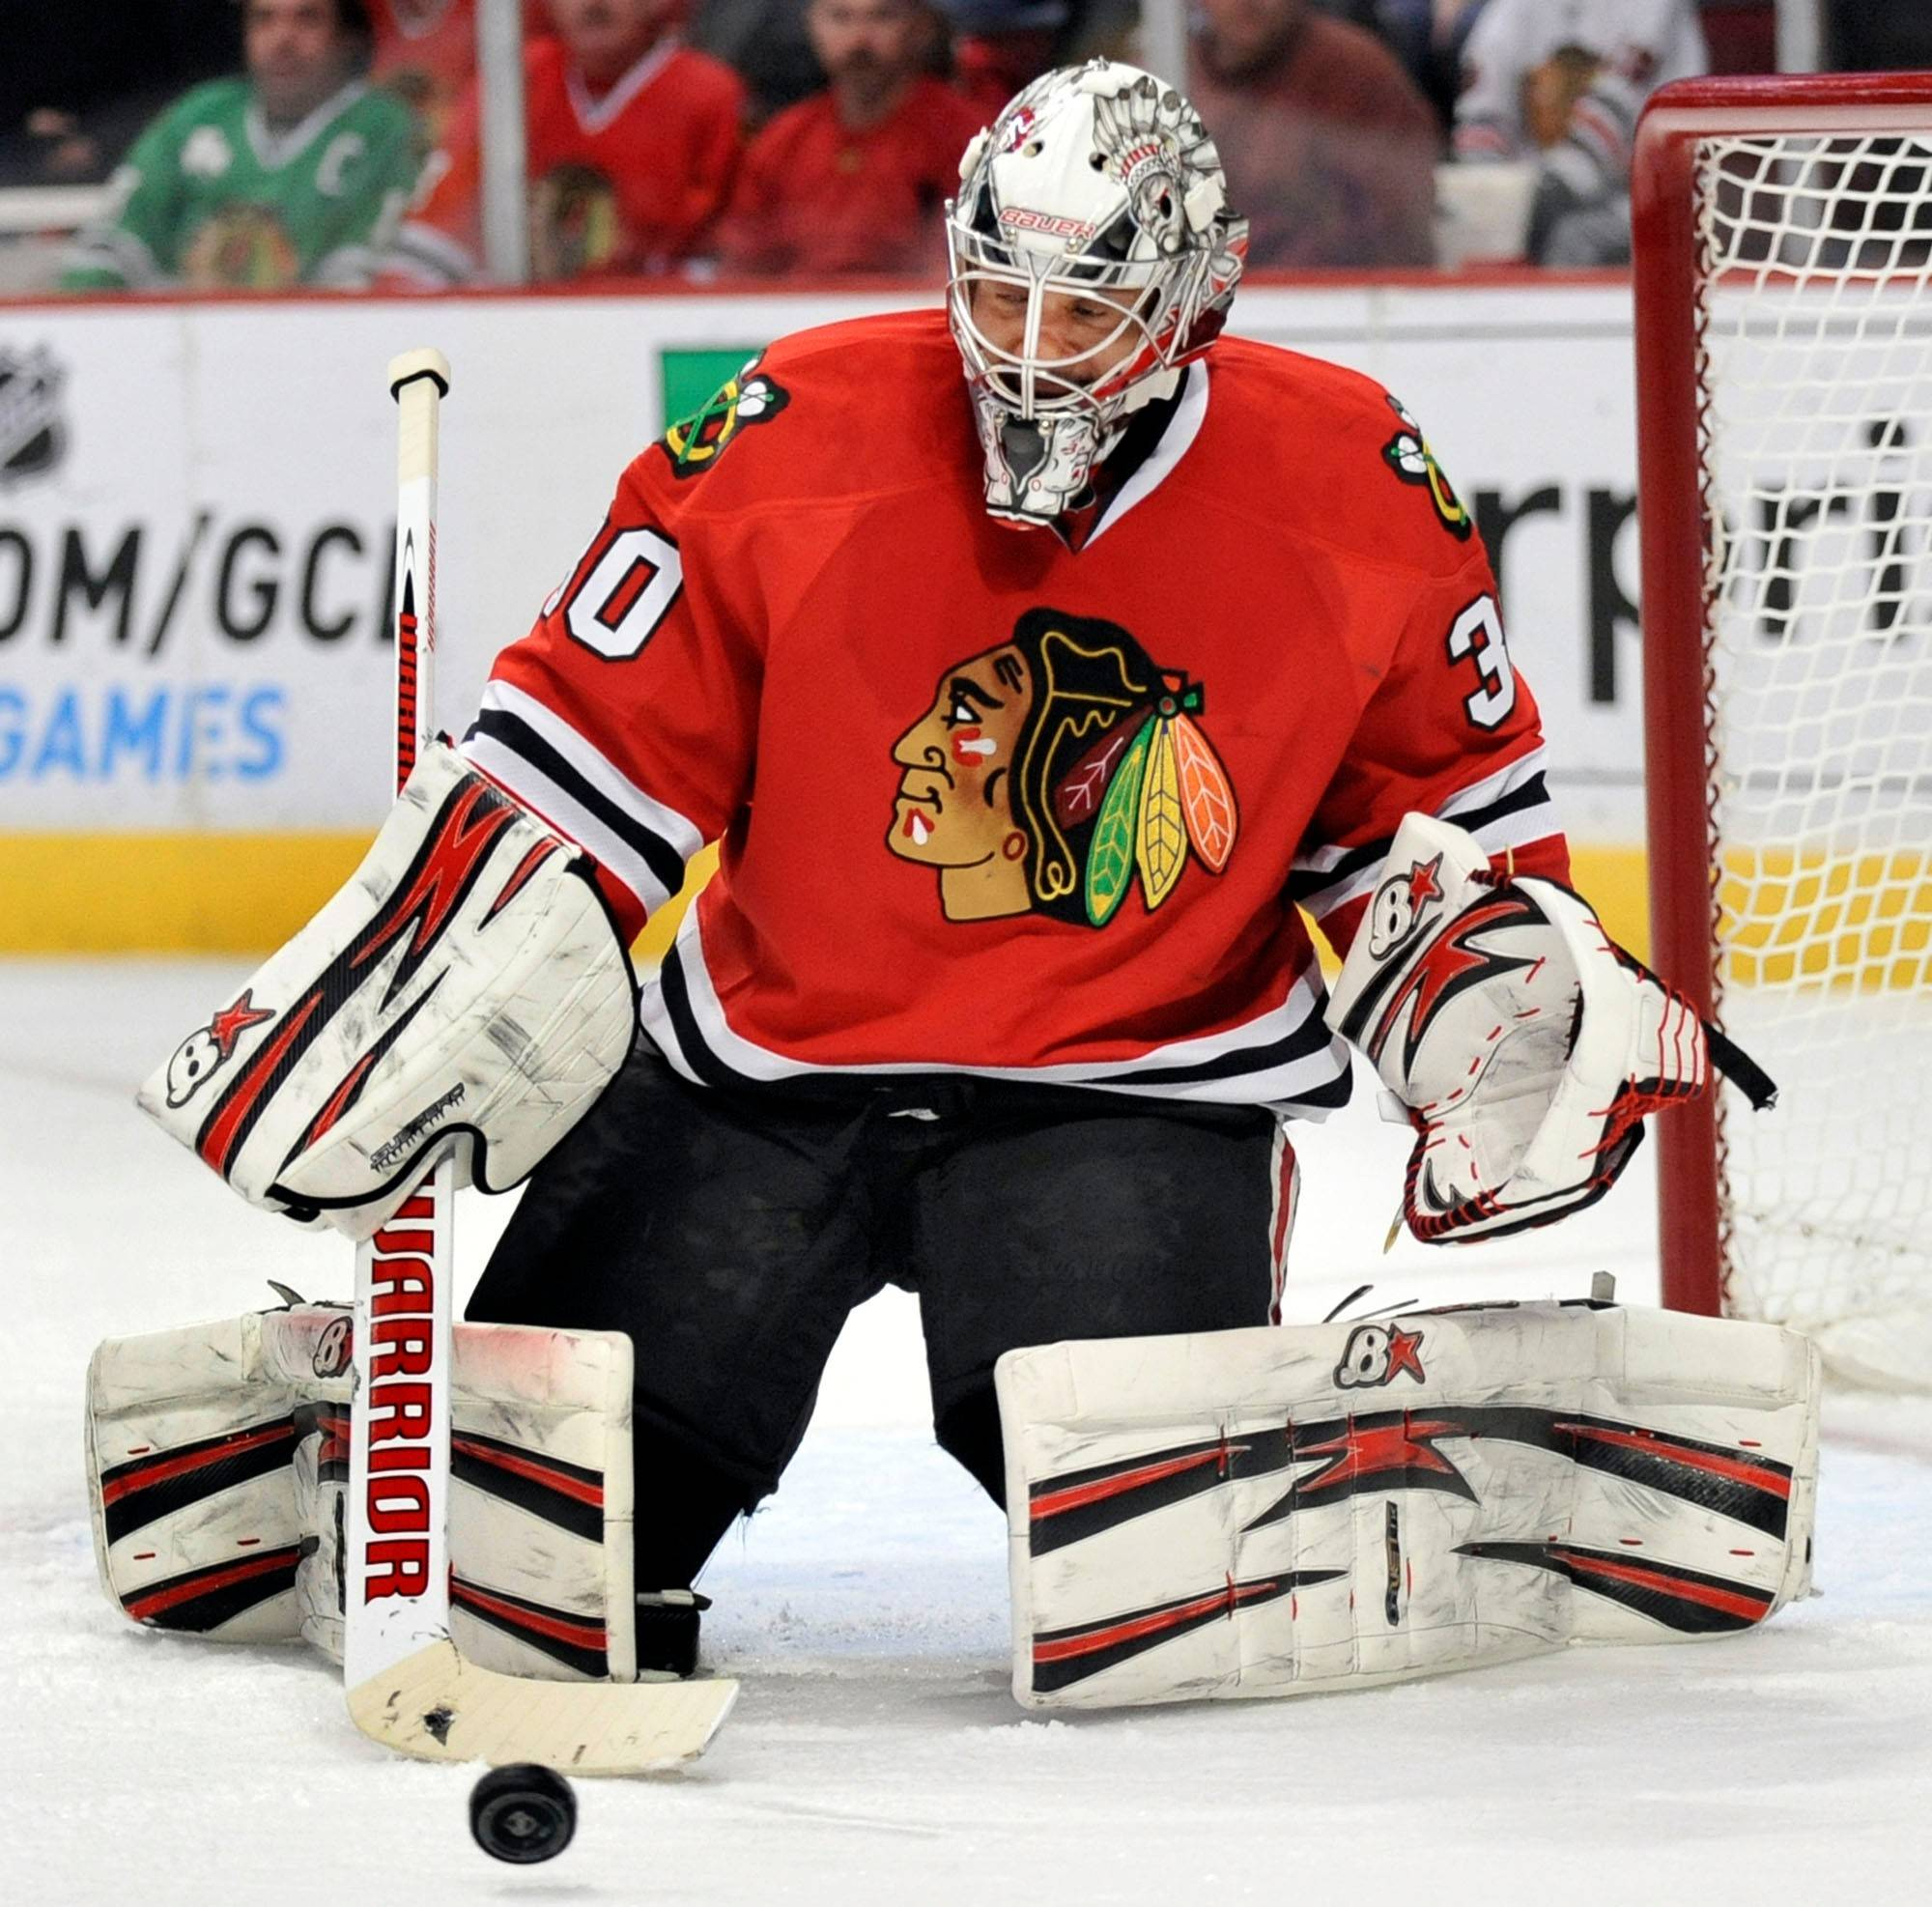 Chicago Blackhawks goalie Ray Emery makes a save against the Anaheim Ducks during the first period of an NHL hockey game in Chicago, Friday, March, 29, 2013.